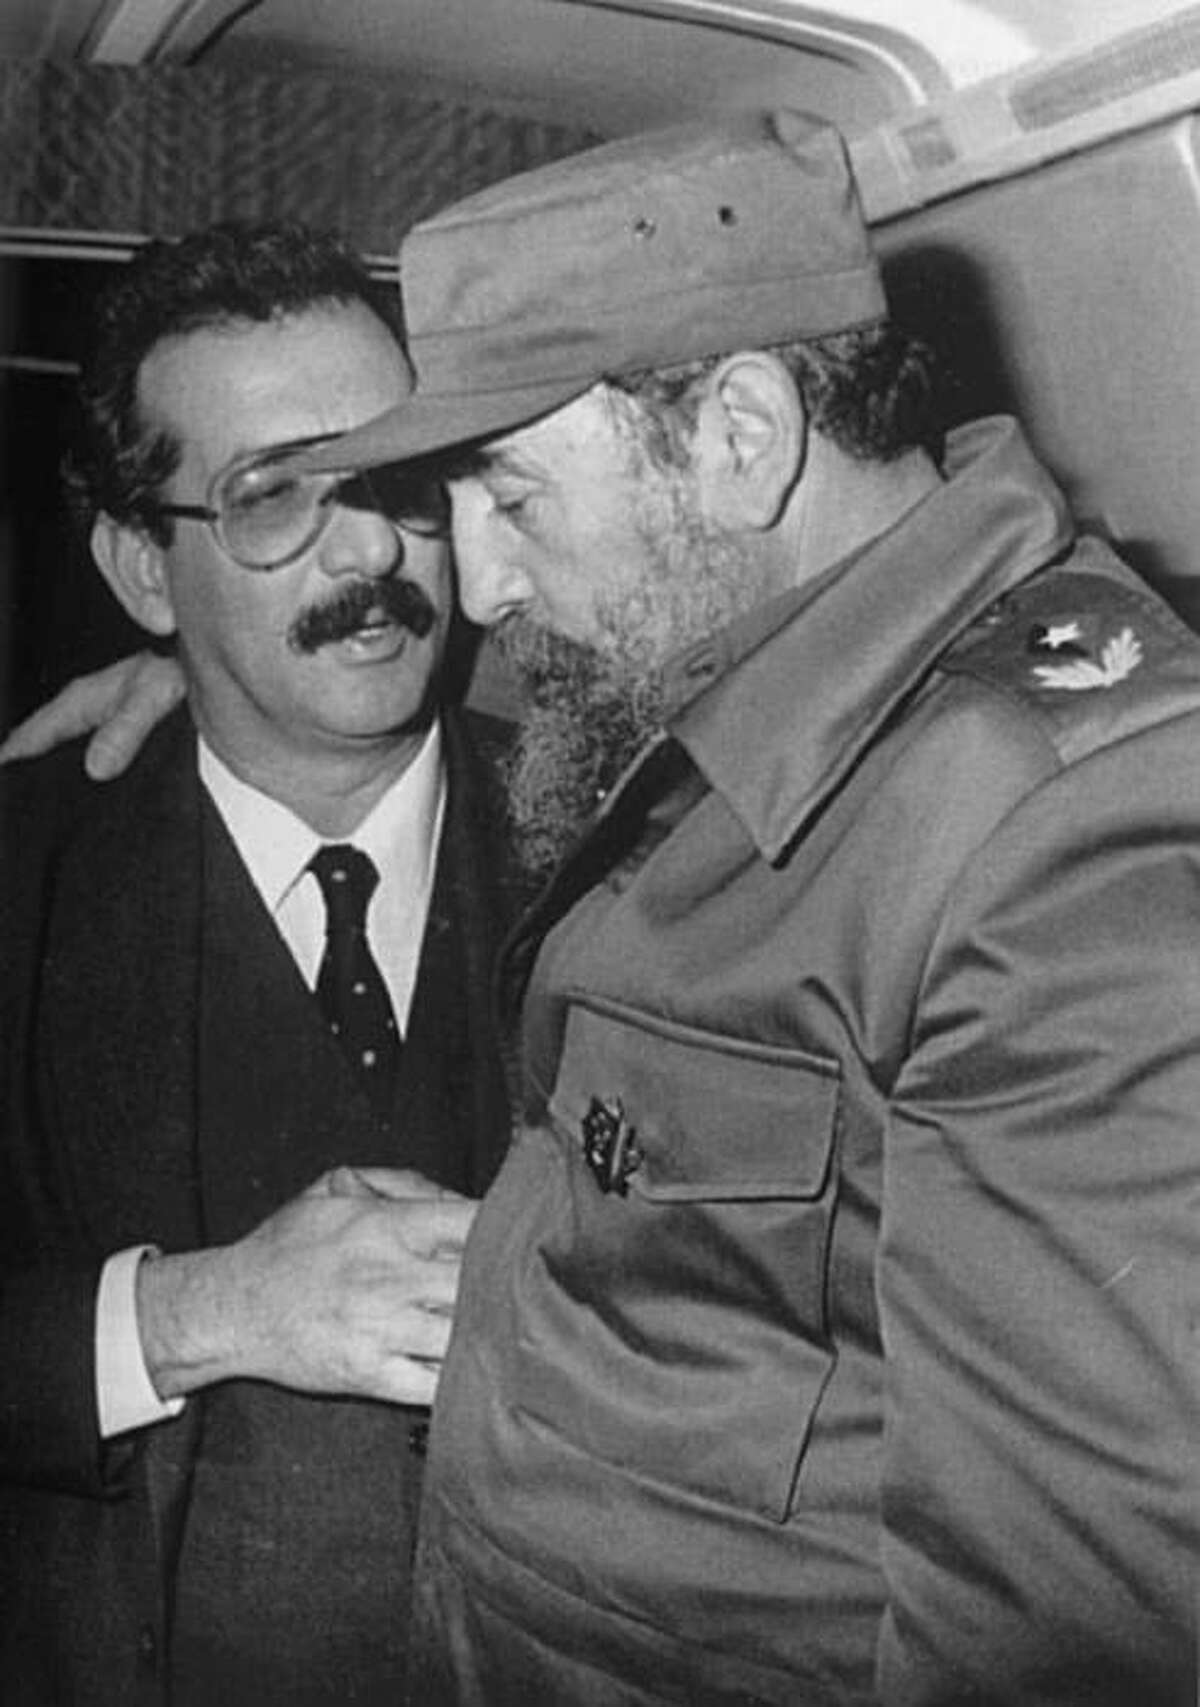 a photo from the collection of author Norberto Fuentes, shown with Fidel Castro.